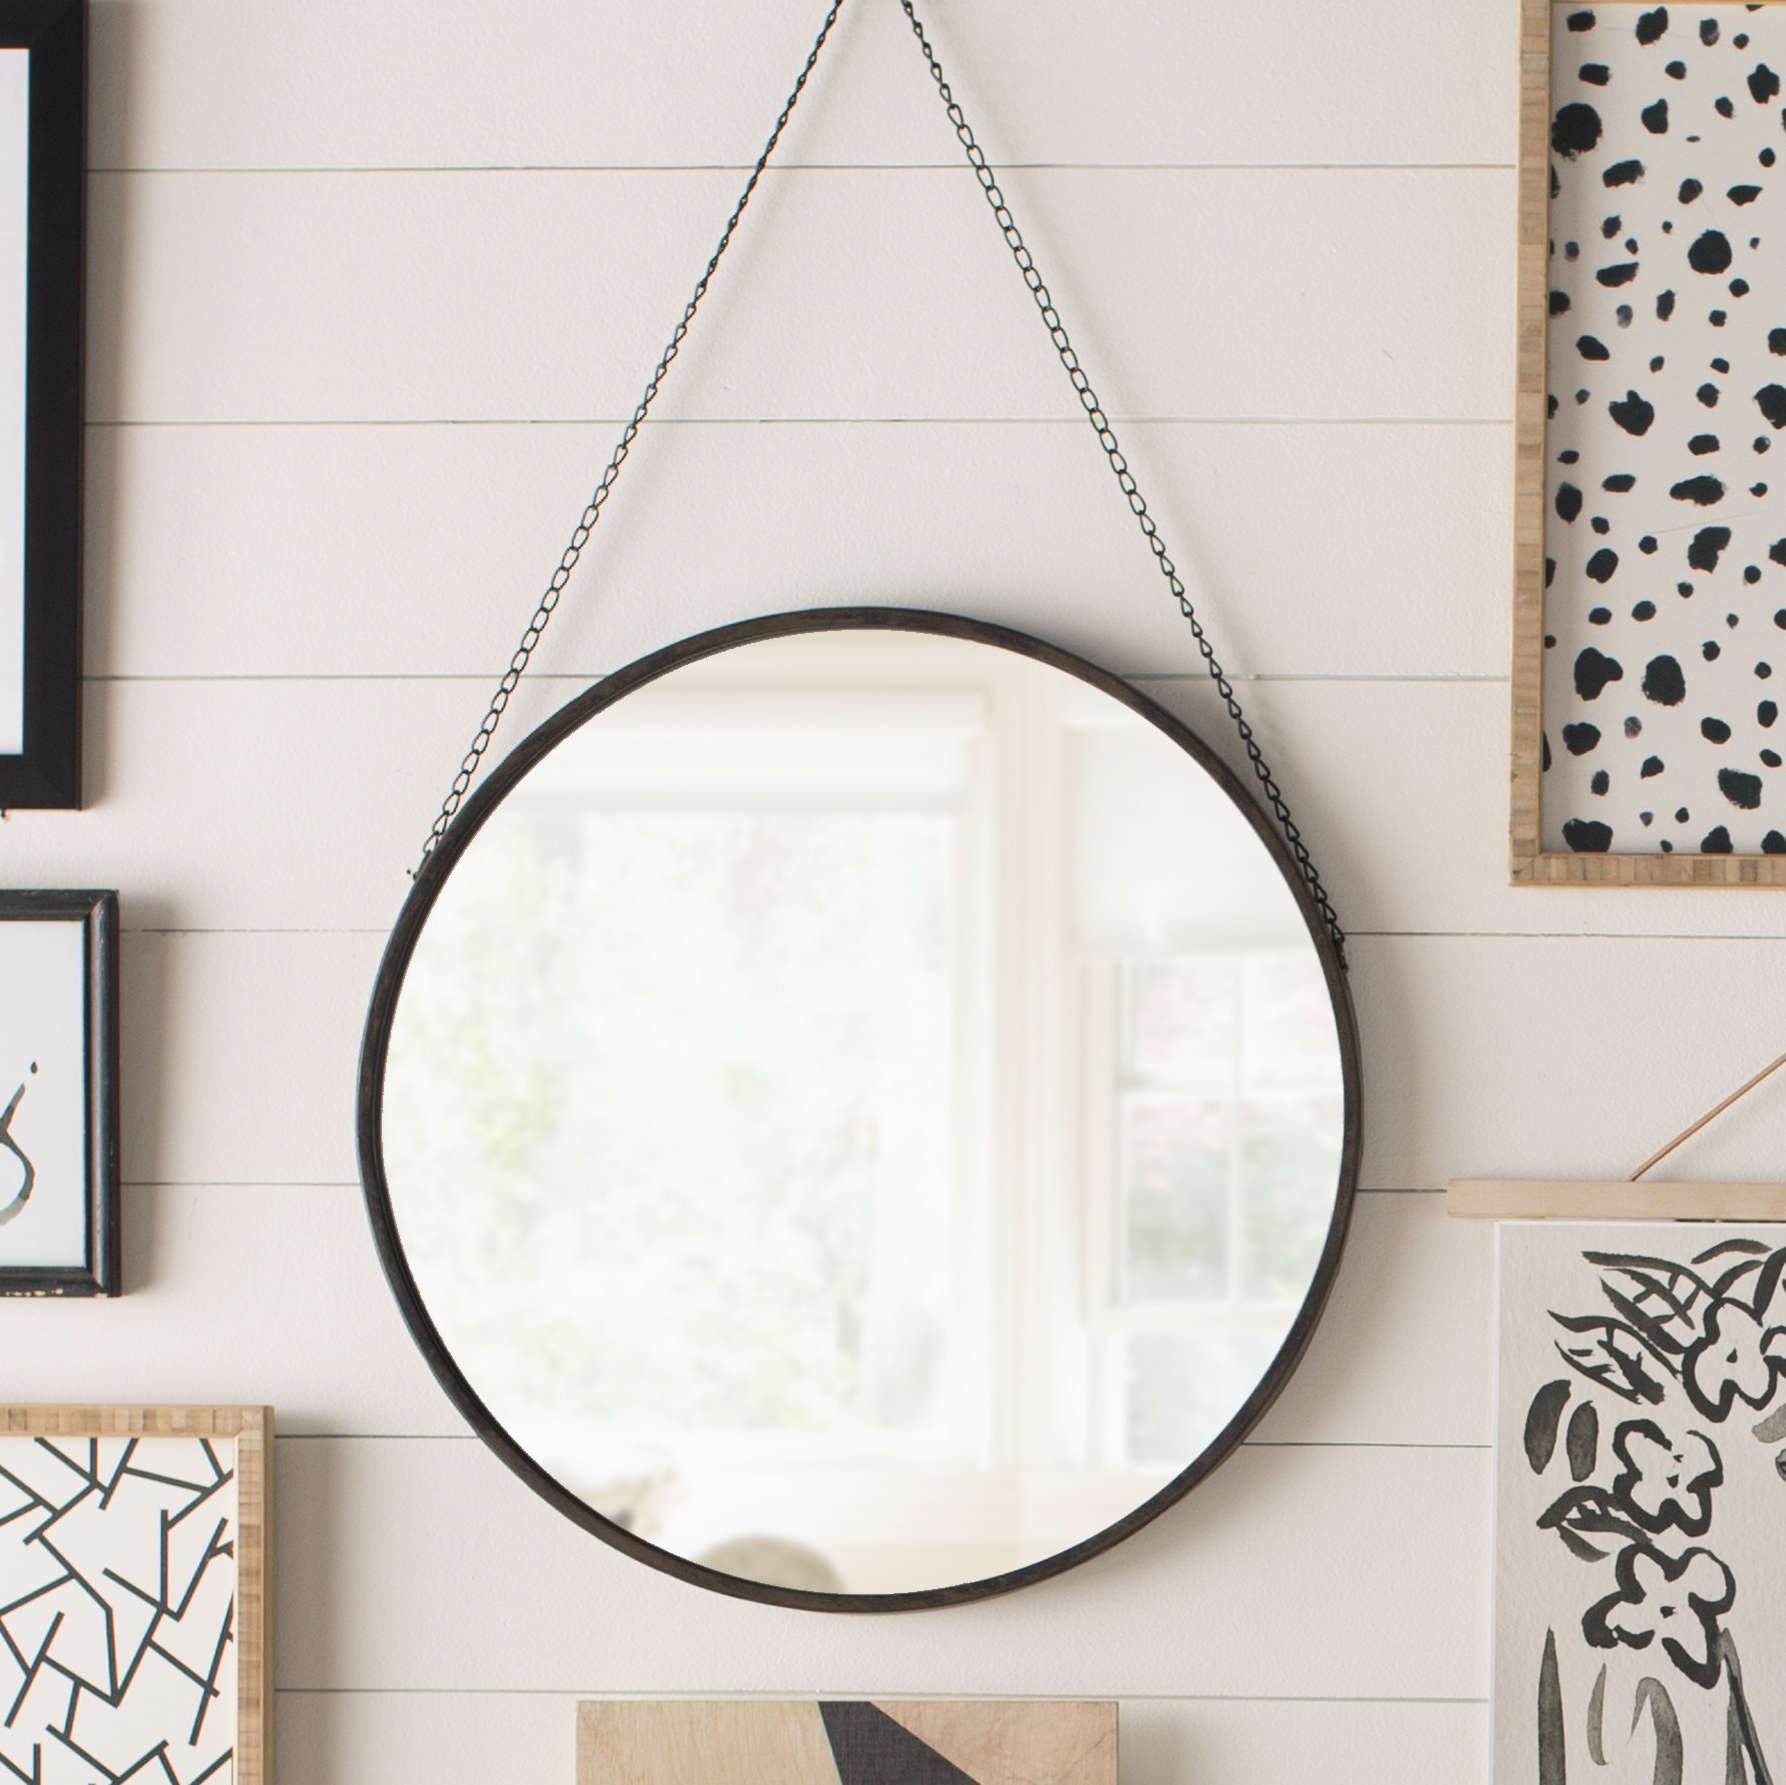 Matthias Round Accent Mirrors Throughout Widely Used Hardison With Chain Hanger Accent Mirror (View 20 of 20)